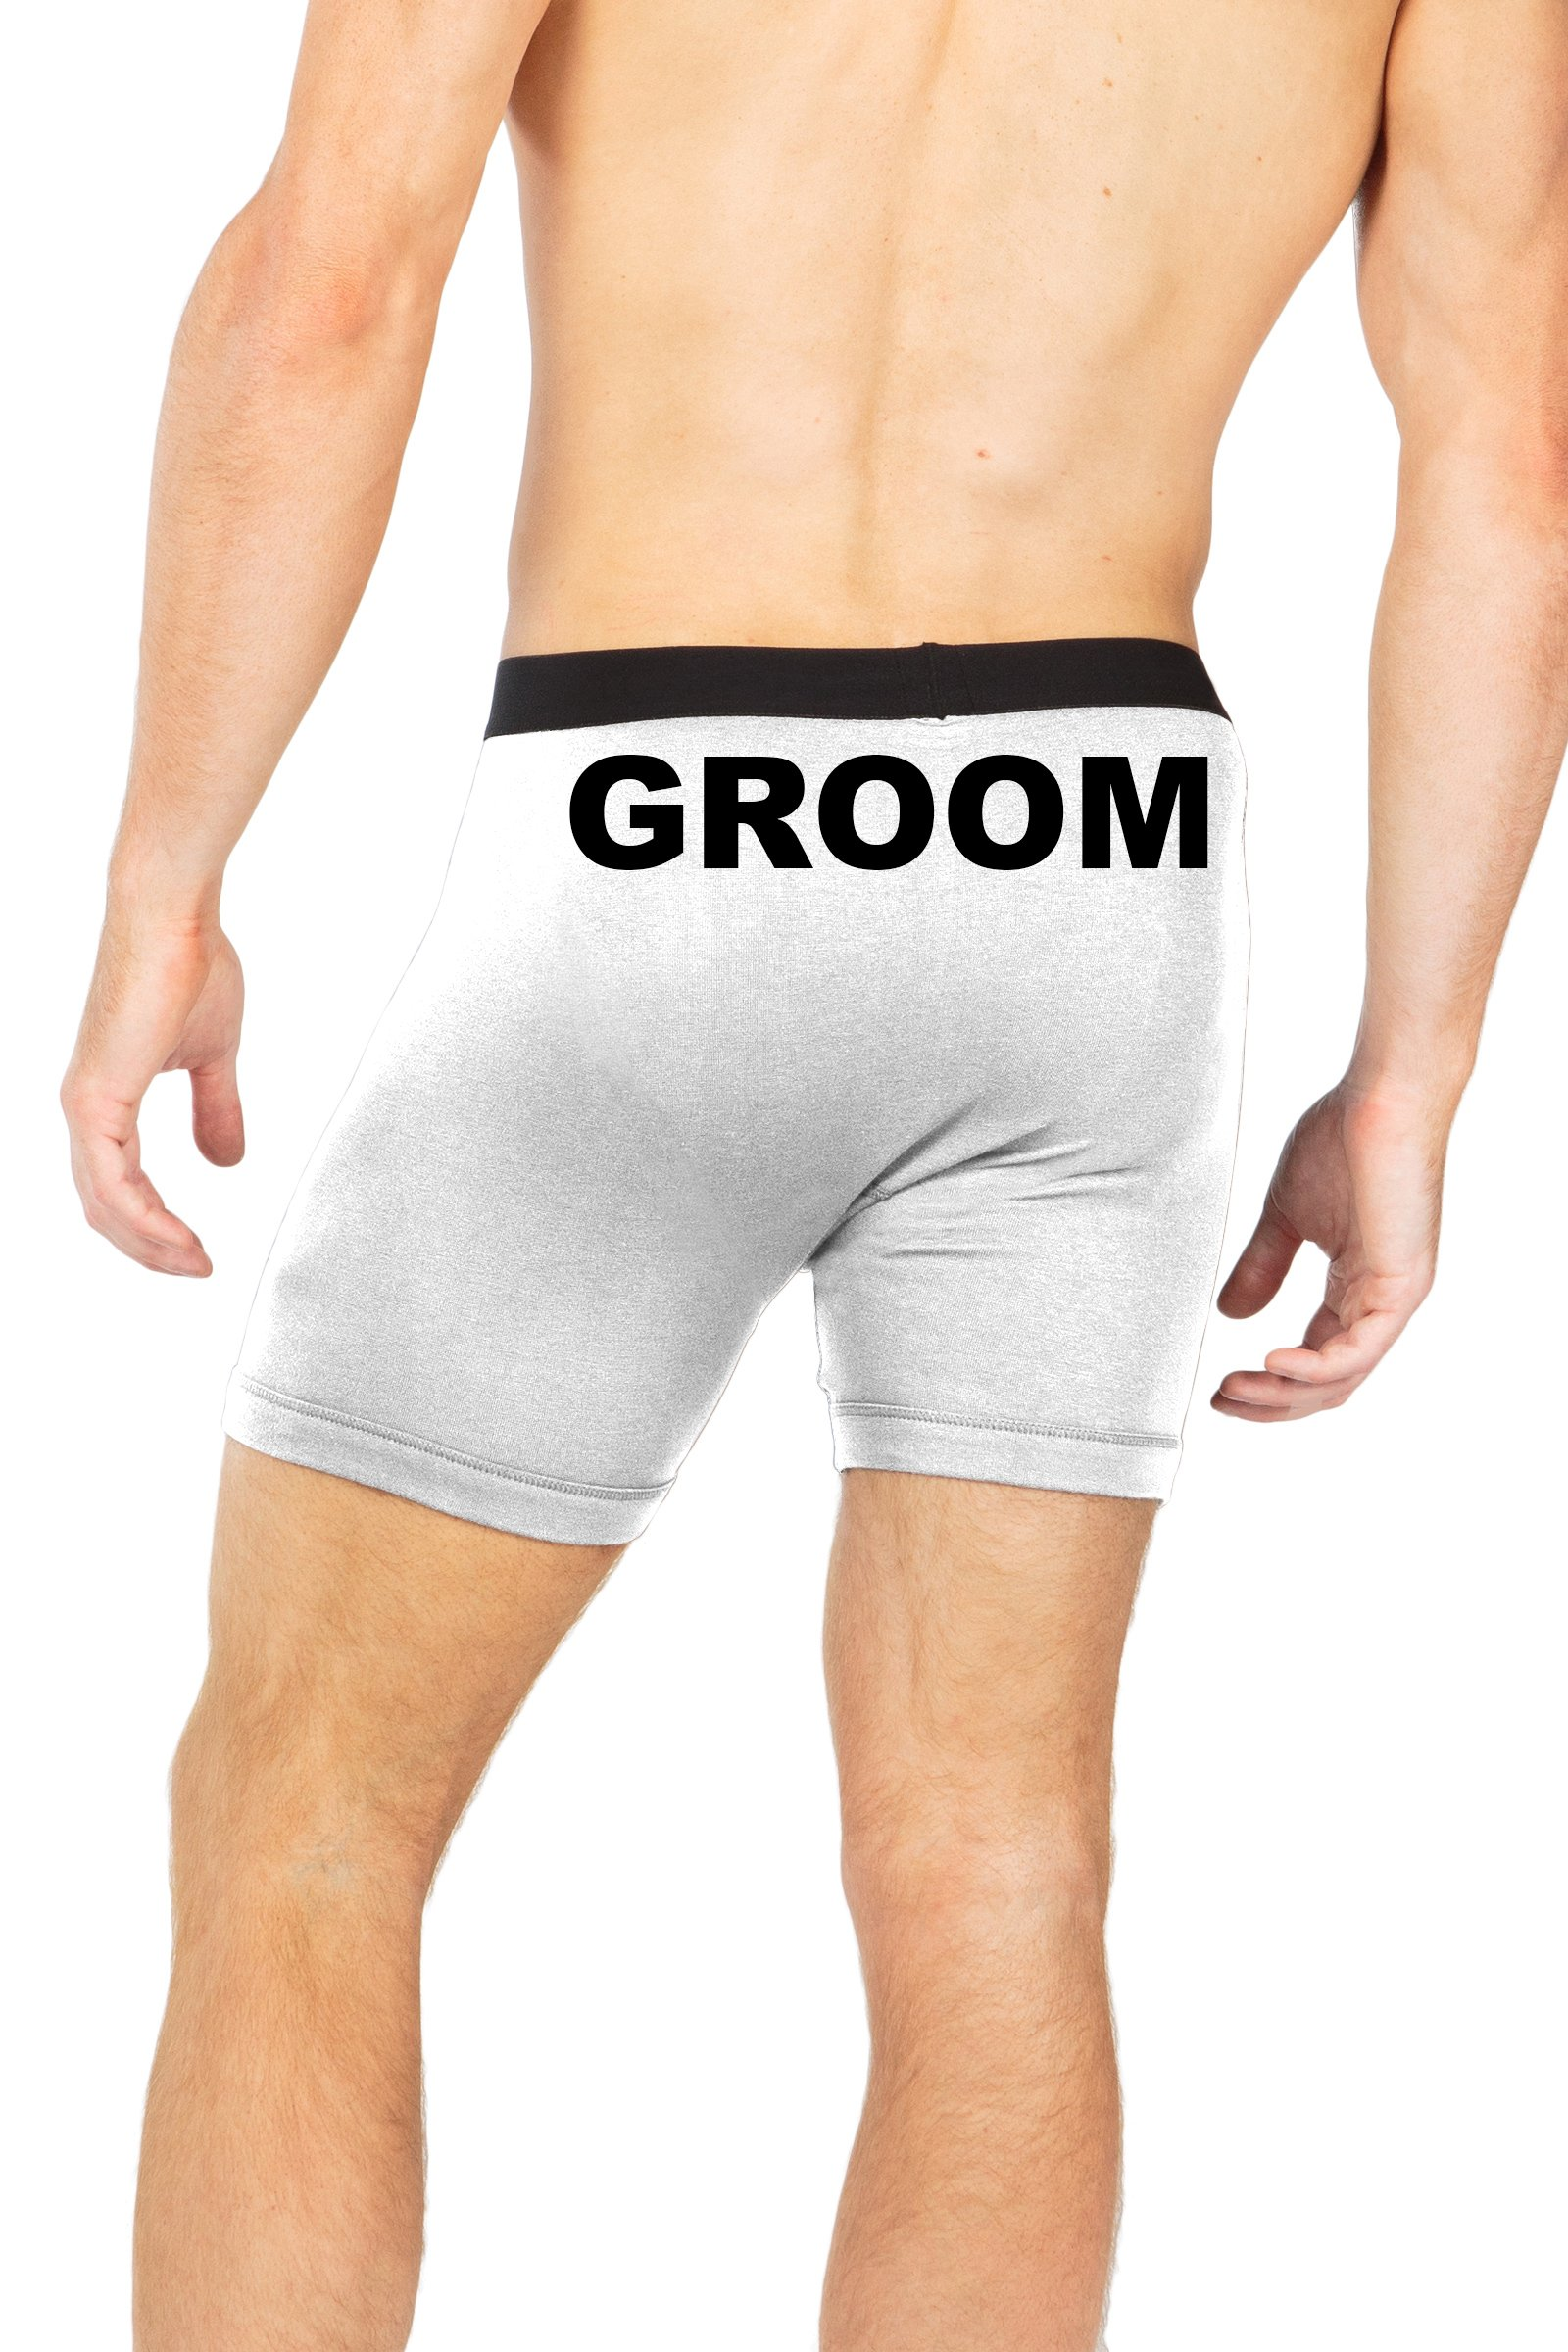 Boxer Briefs for Men Groom Wedding Underwear Bachelor Party Gifts White X-Large